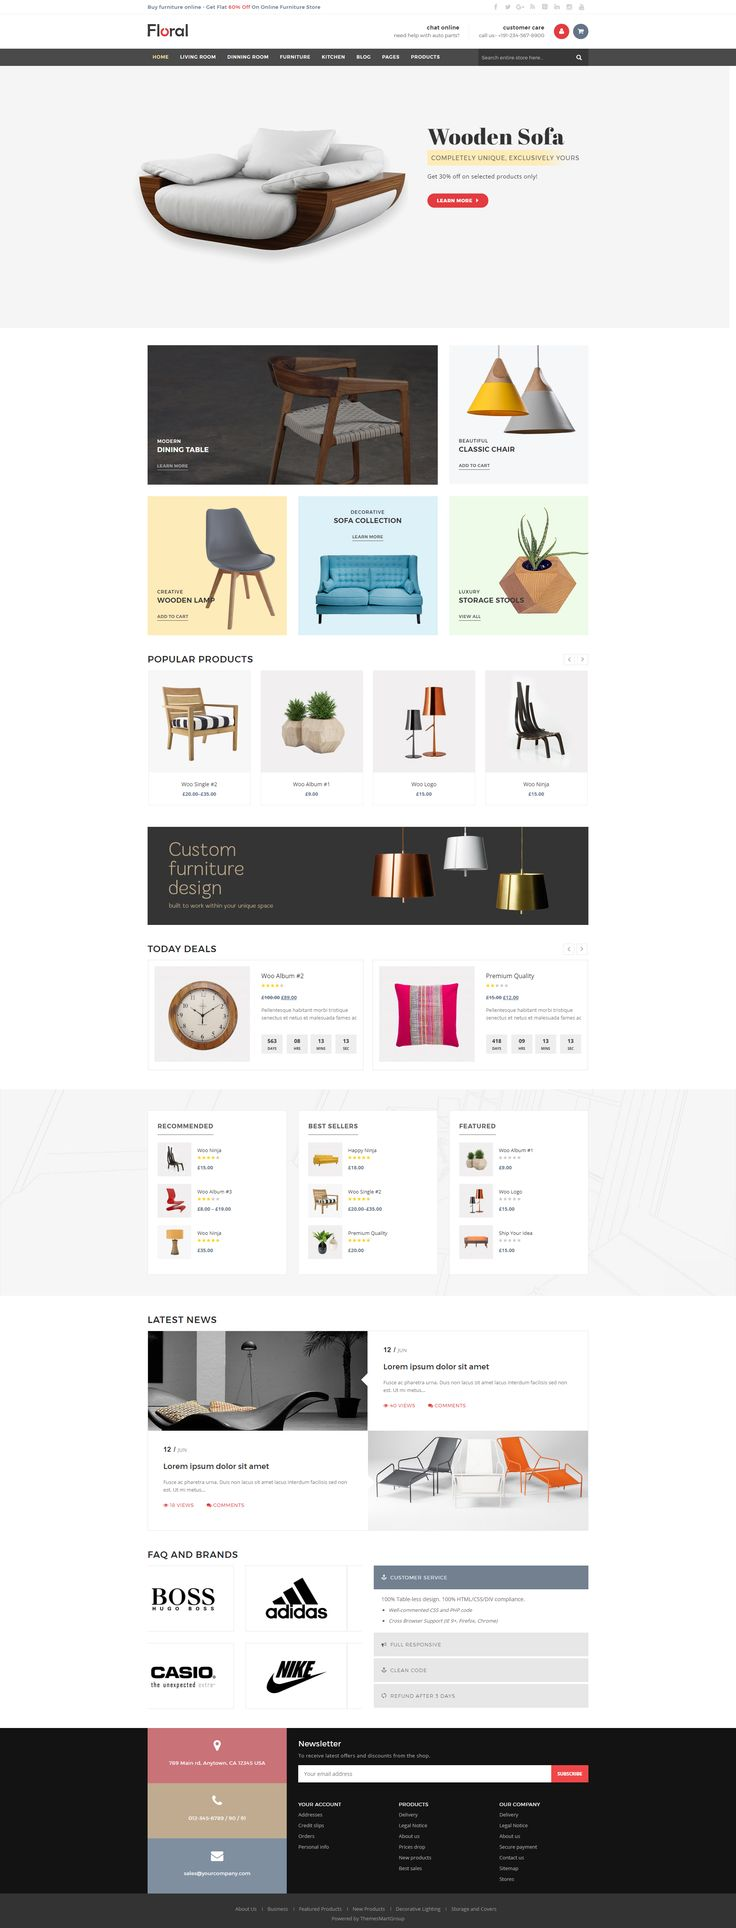 Floral is the best premium #WordPress theme for furniture and interior #websites with the amazing loading speed, SEO optimization and a lot of #eCommerce features. It suits for any kind of furniture shops, decor stores, interior stores, tool shops, etc. #design #theme